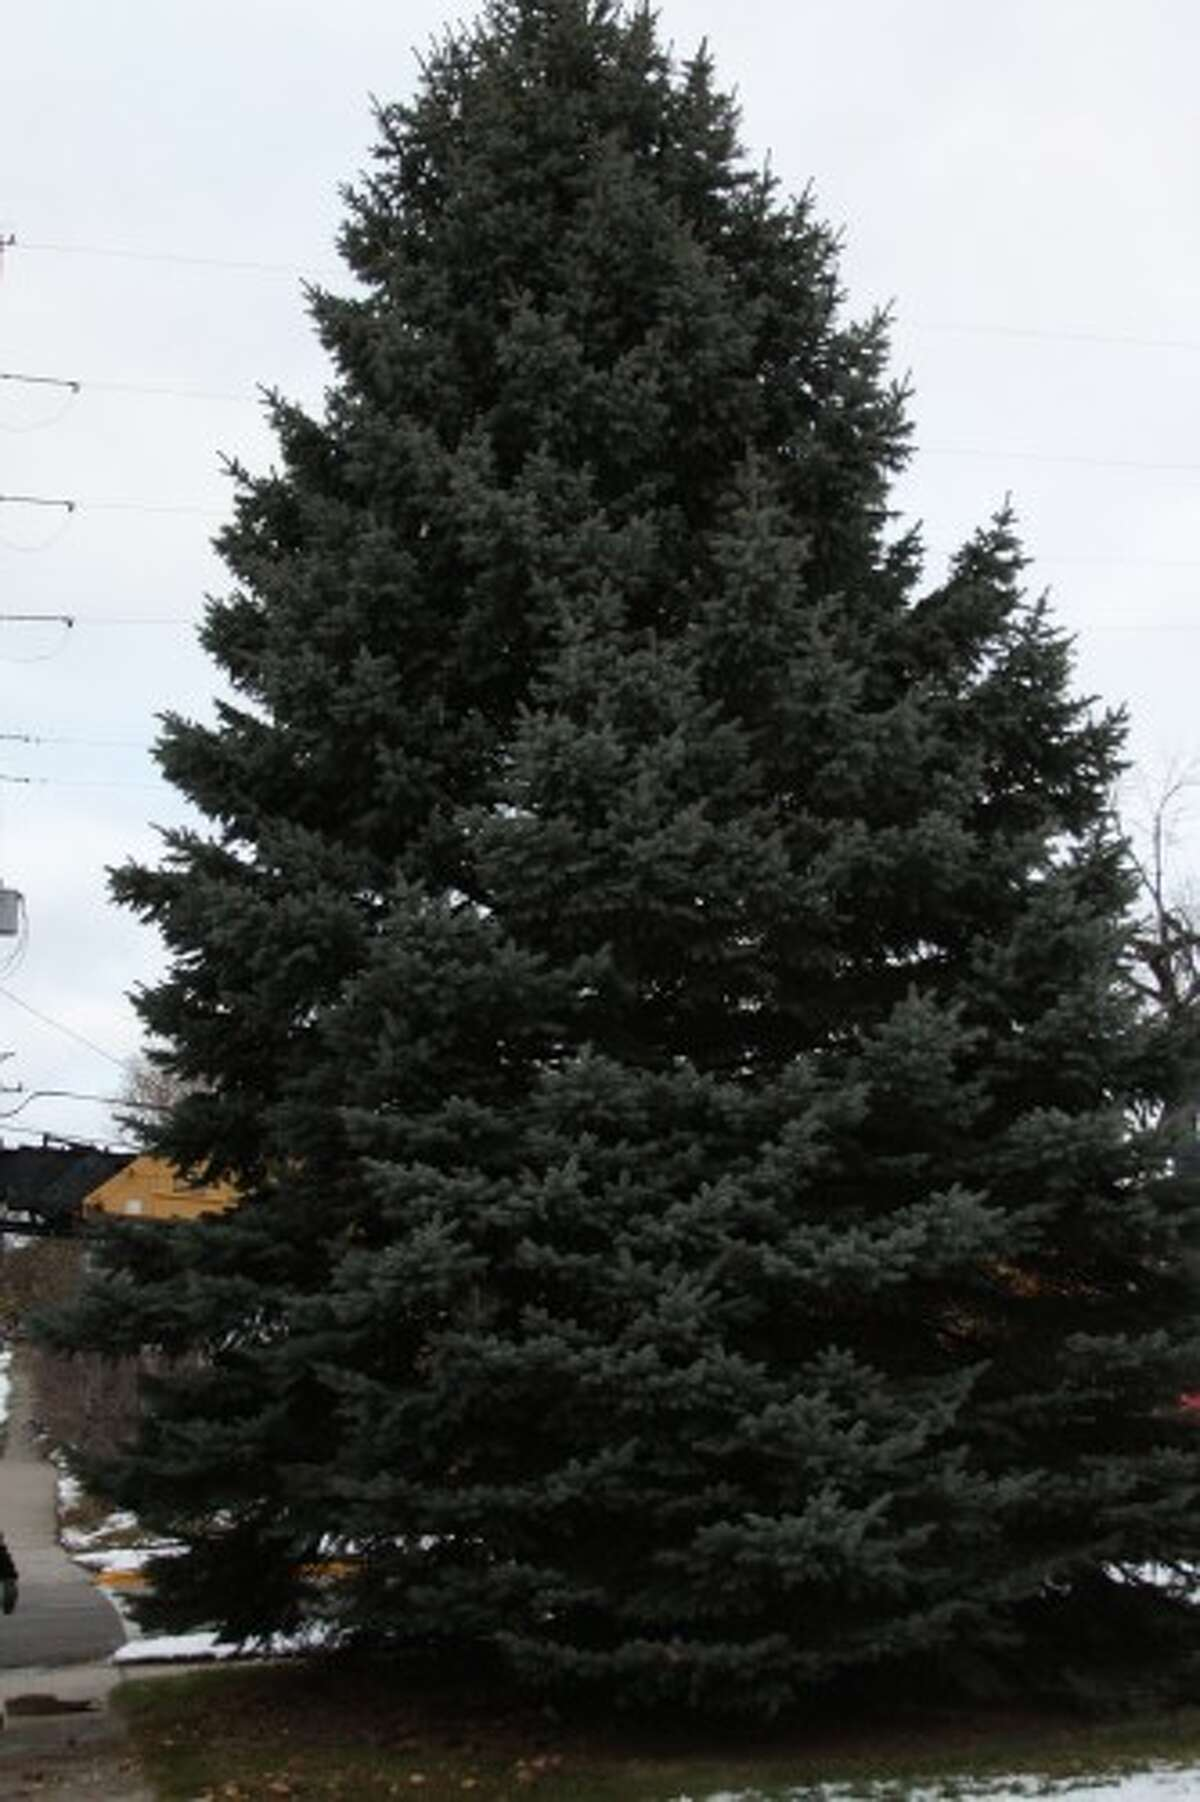 A 33-foot-tall pine tree, planted by Paul Kubacki in 1979, was chosen as the City of Manistee's tree for its 27th annual Victorian Sleighbell Parade. It was cut down Tuesday by City of Manistee Department of Public Works employees outside the Kubacki home on the 200 block of Eighth Street. (Sean Bradley/News Advocate)